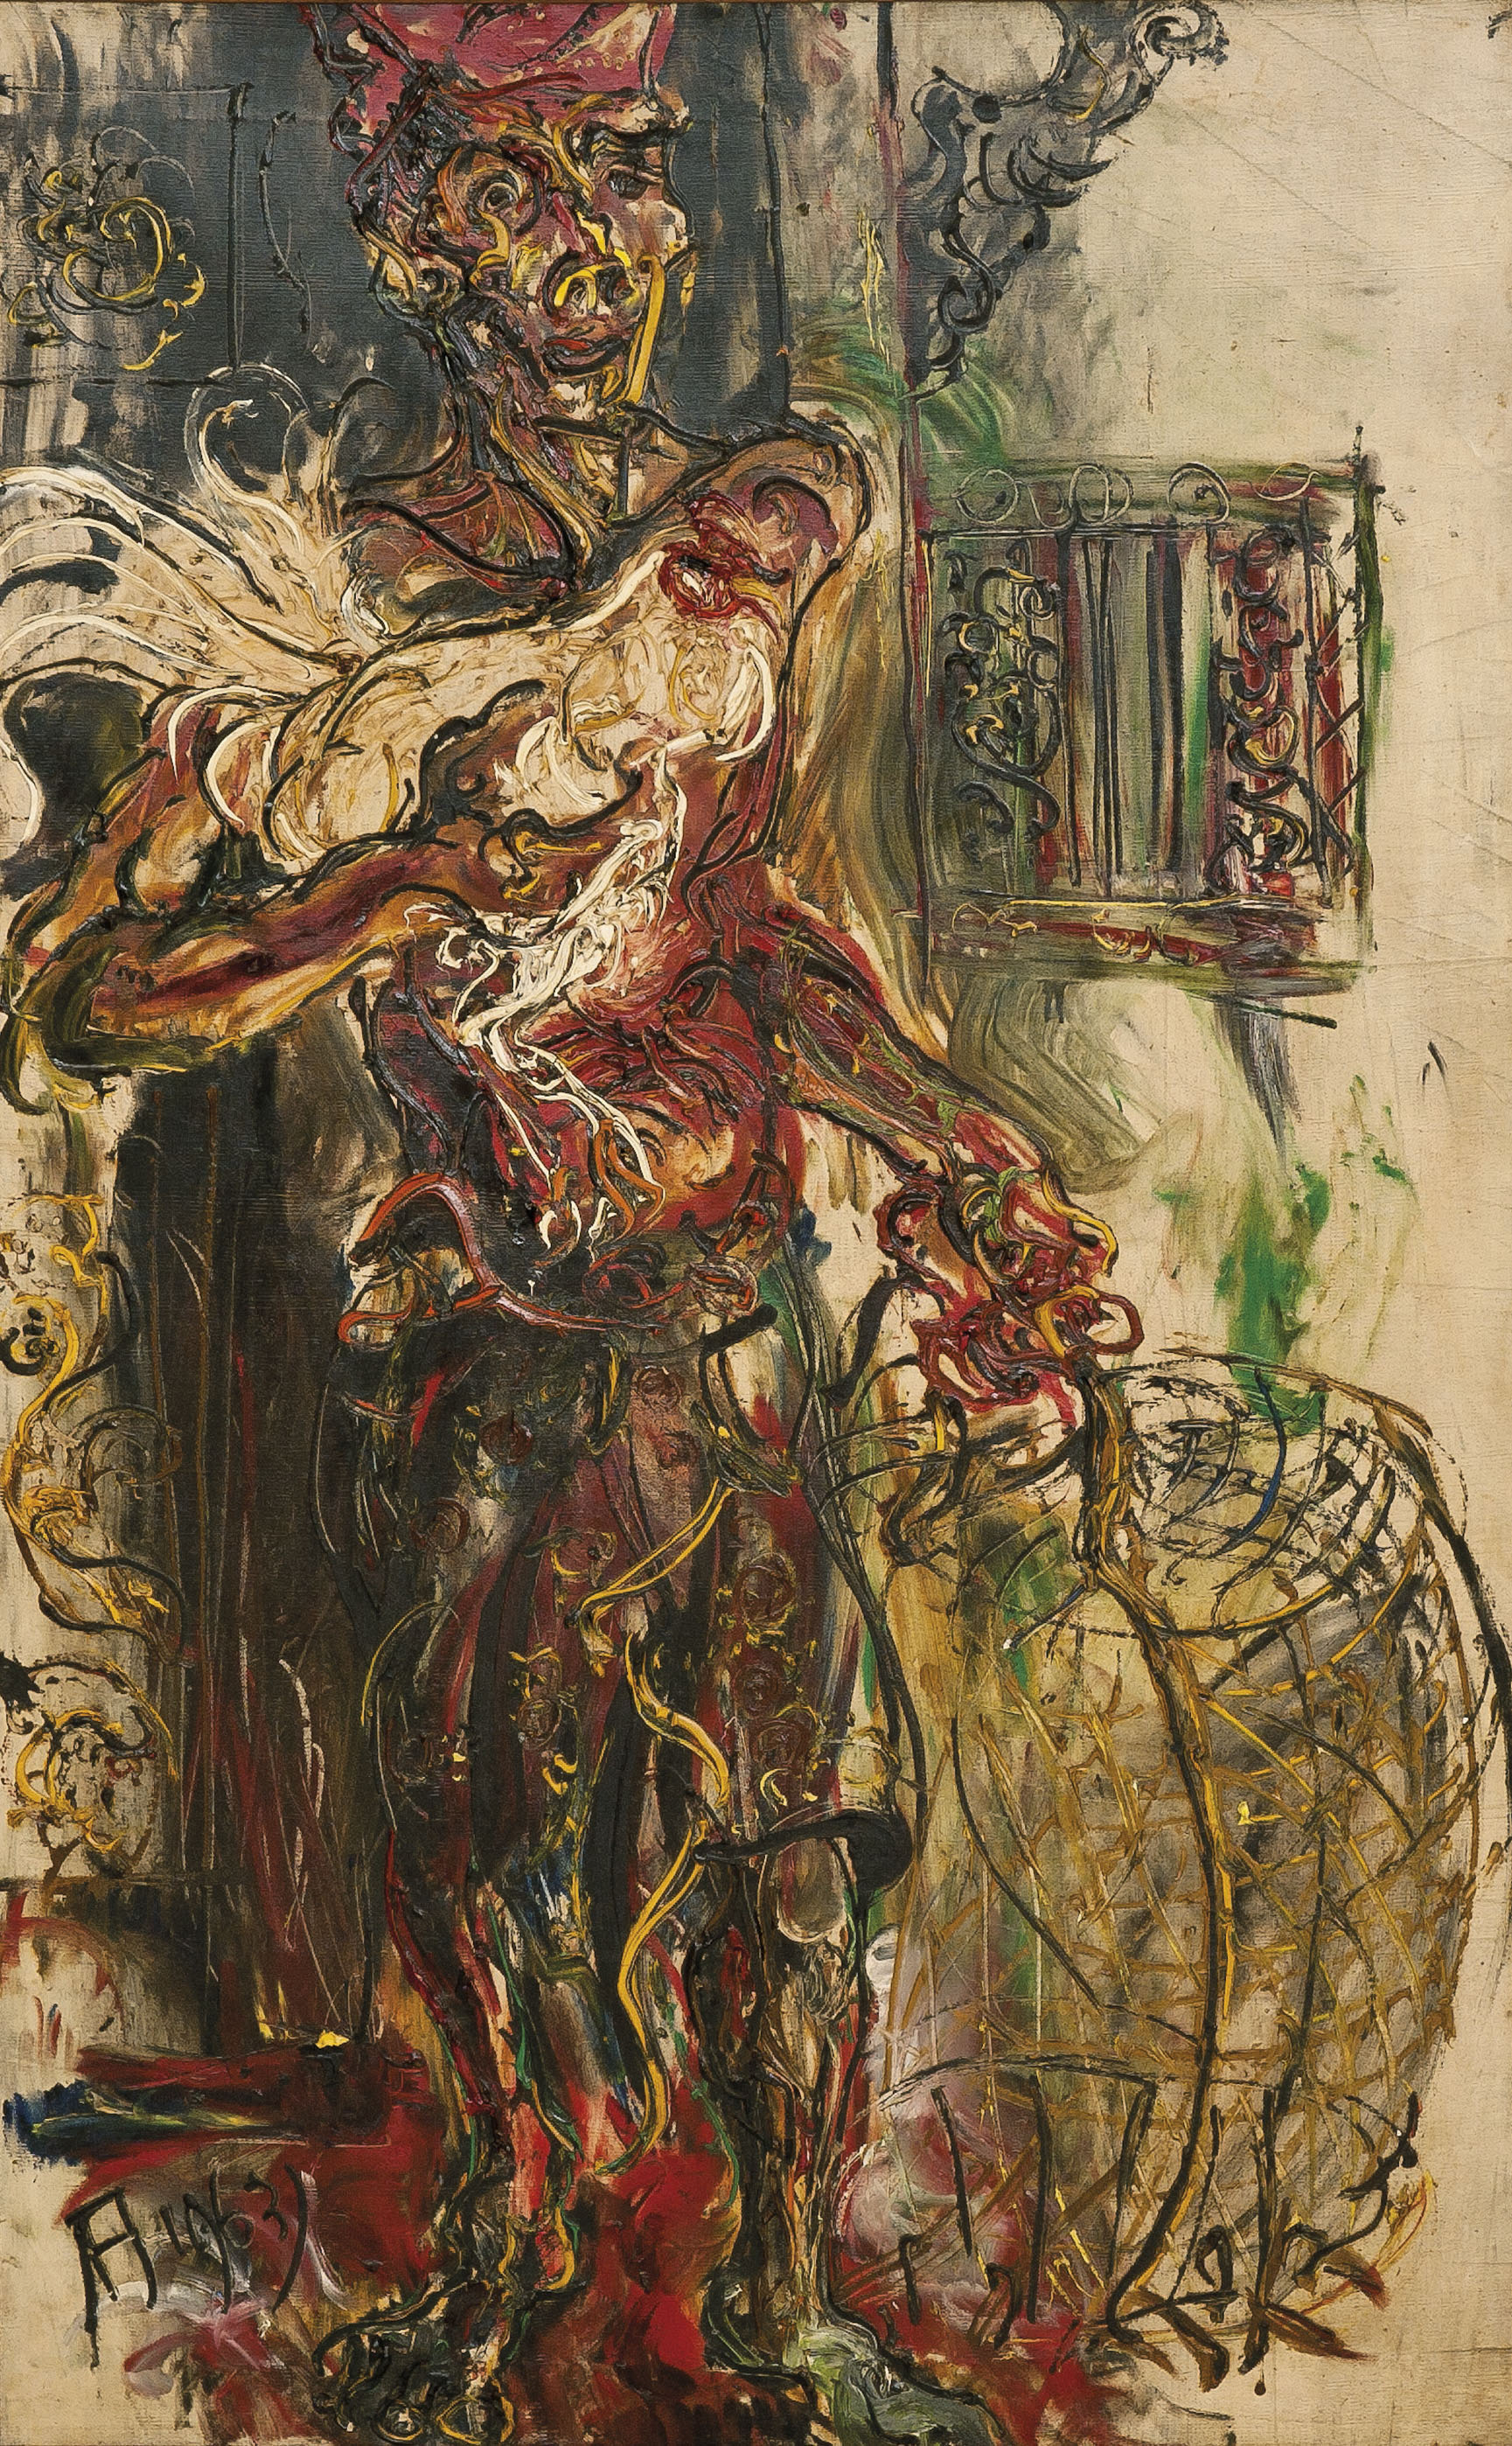 Ayam Jago (Man with a Fighting Rooster)